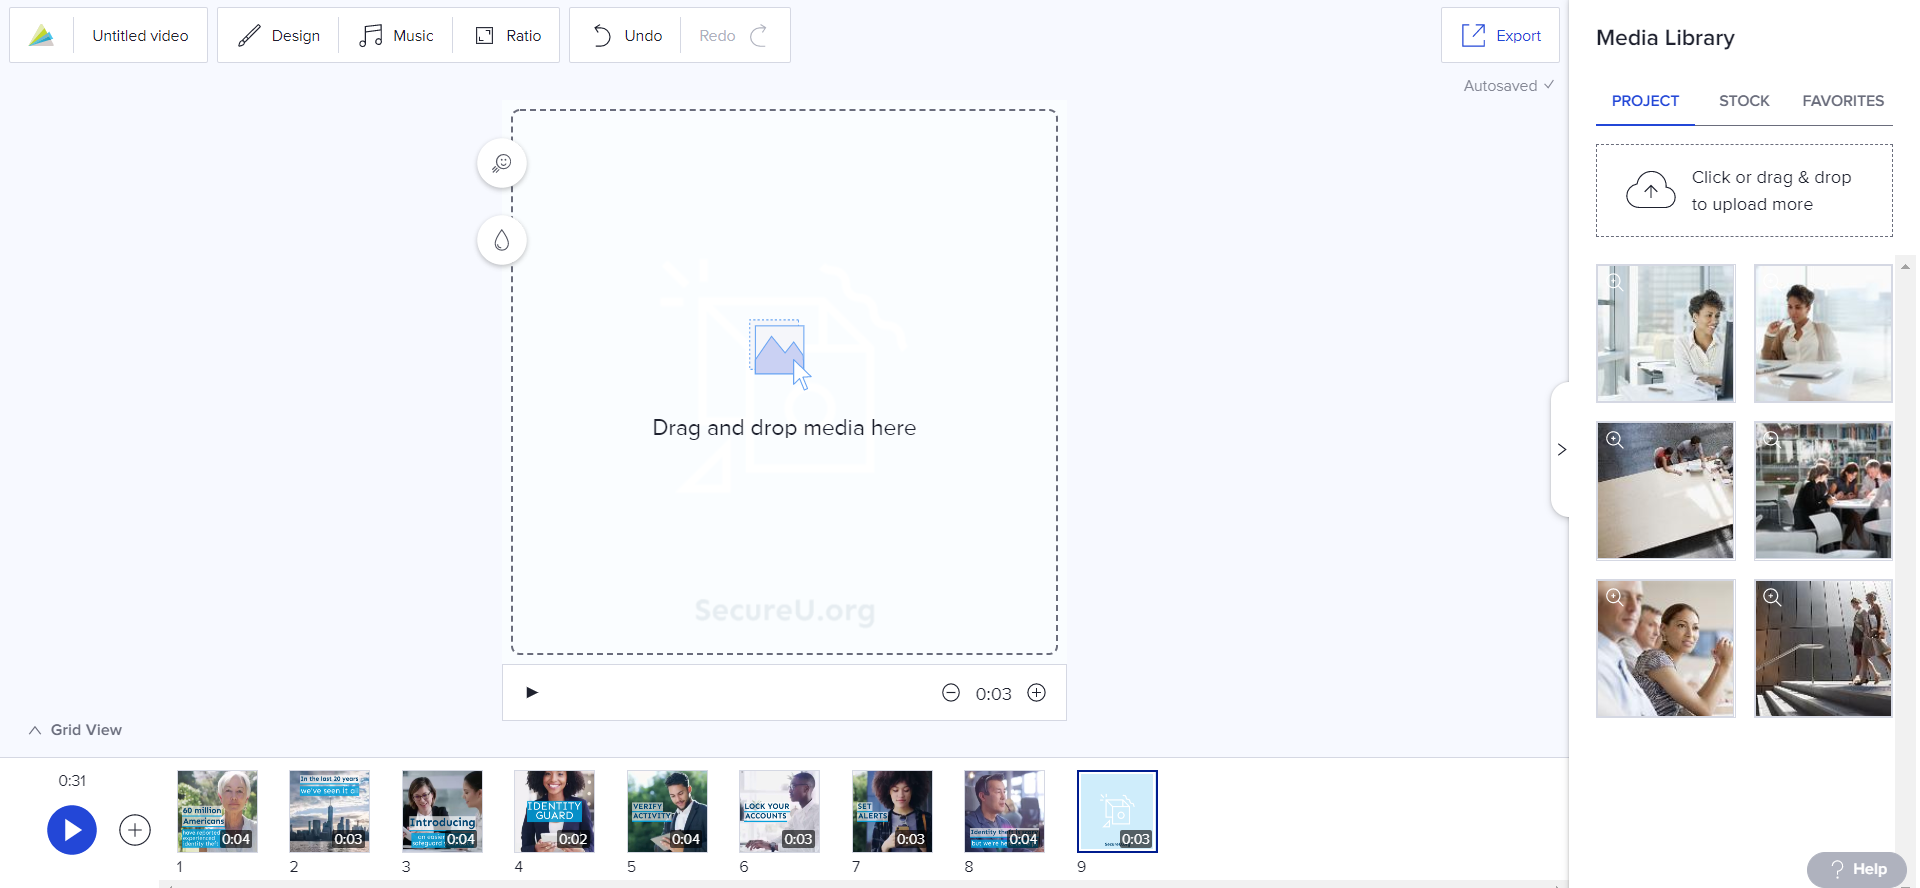 Upload photos and video clips to the Project tab